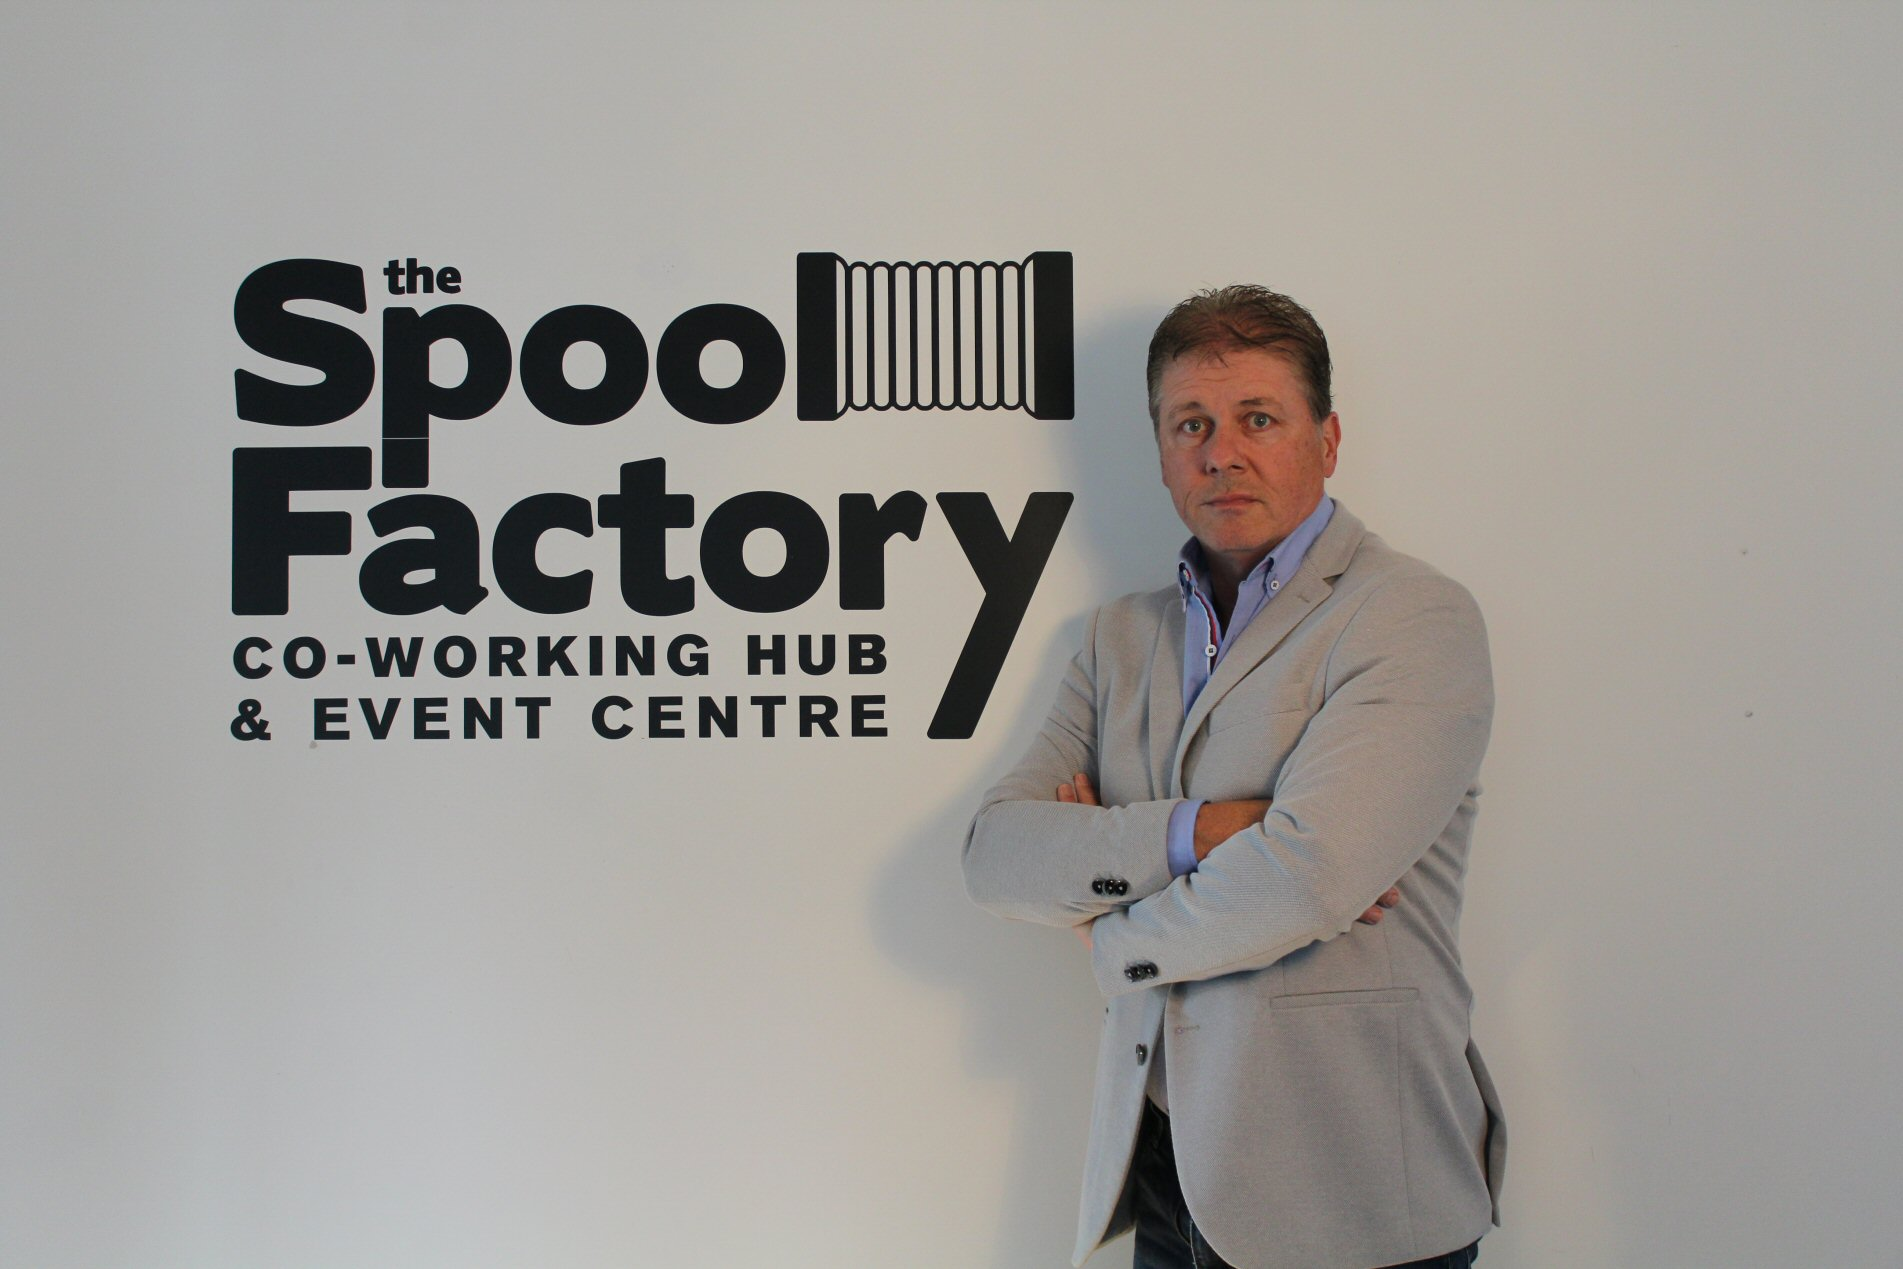 The Spool Factory welcomes ConnectedHubs.ie